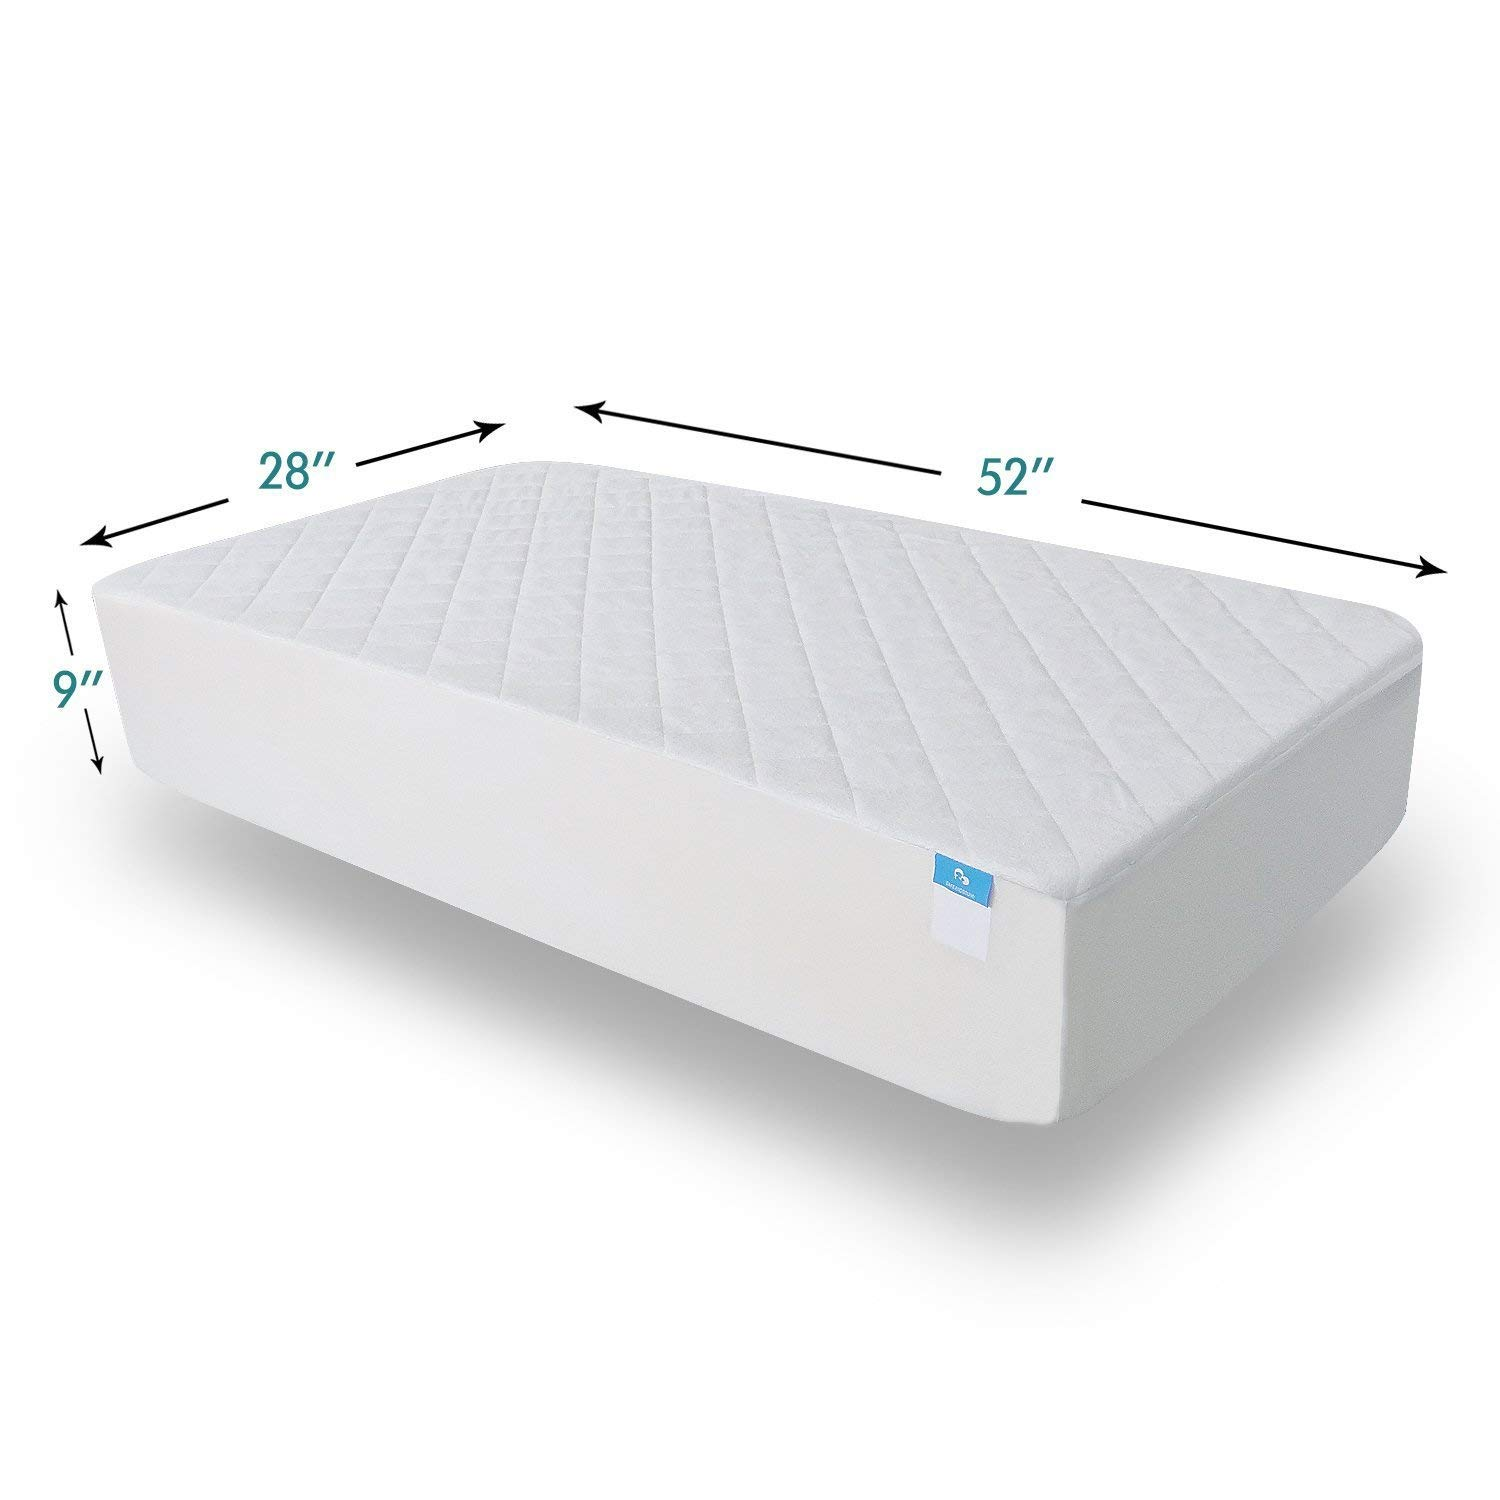 Crib Mattress Protector Organic Bamboo Waterproof Quilted Fitted Sheet with 28 x 52 Hypoallergenic Baby Crib Mattress Cover Pad